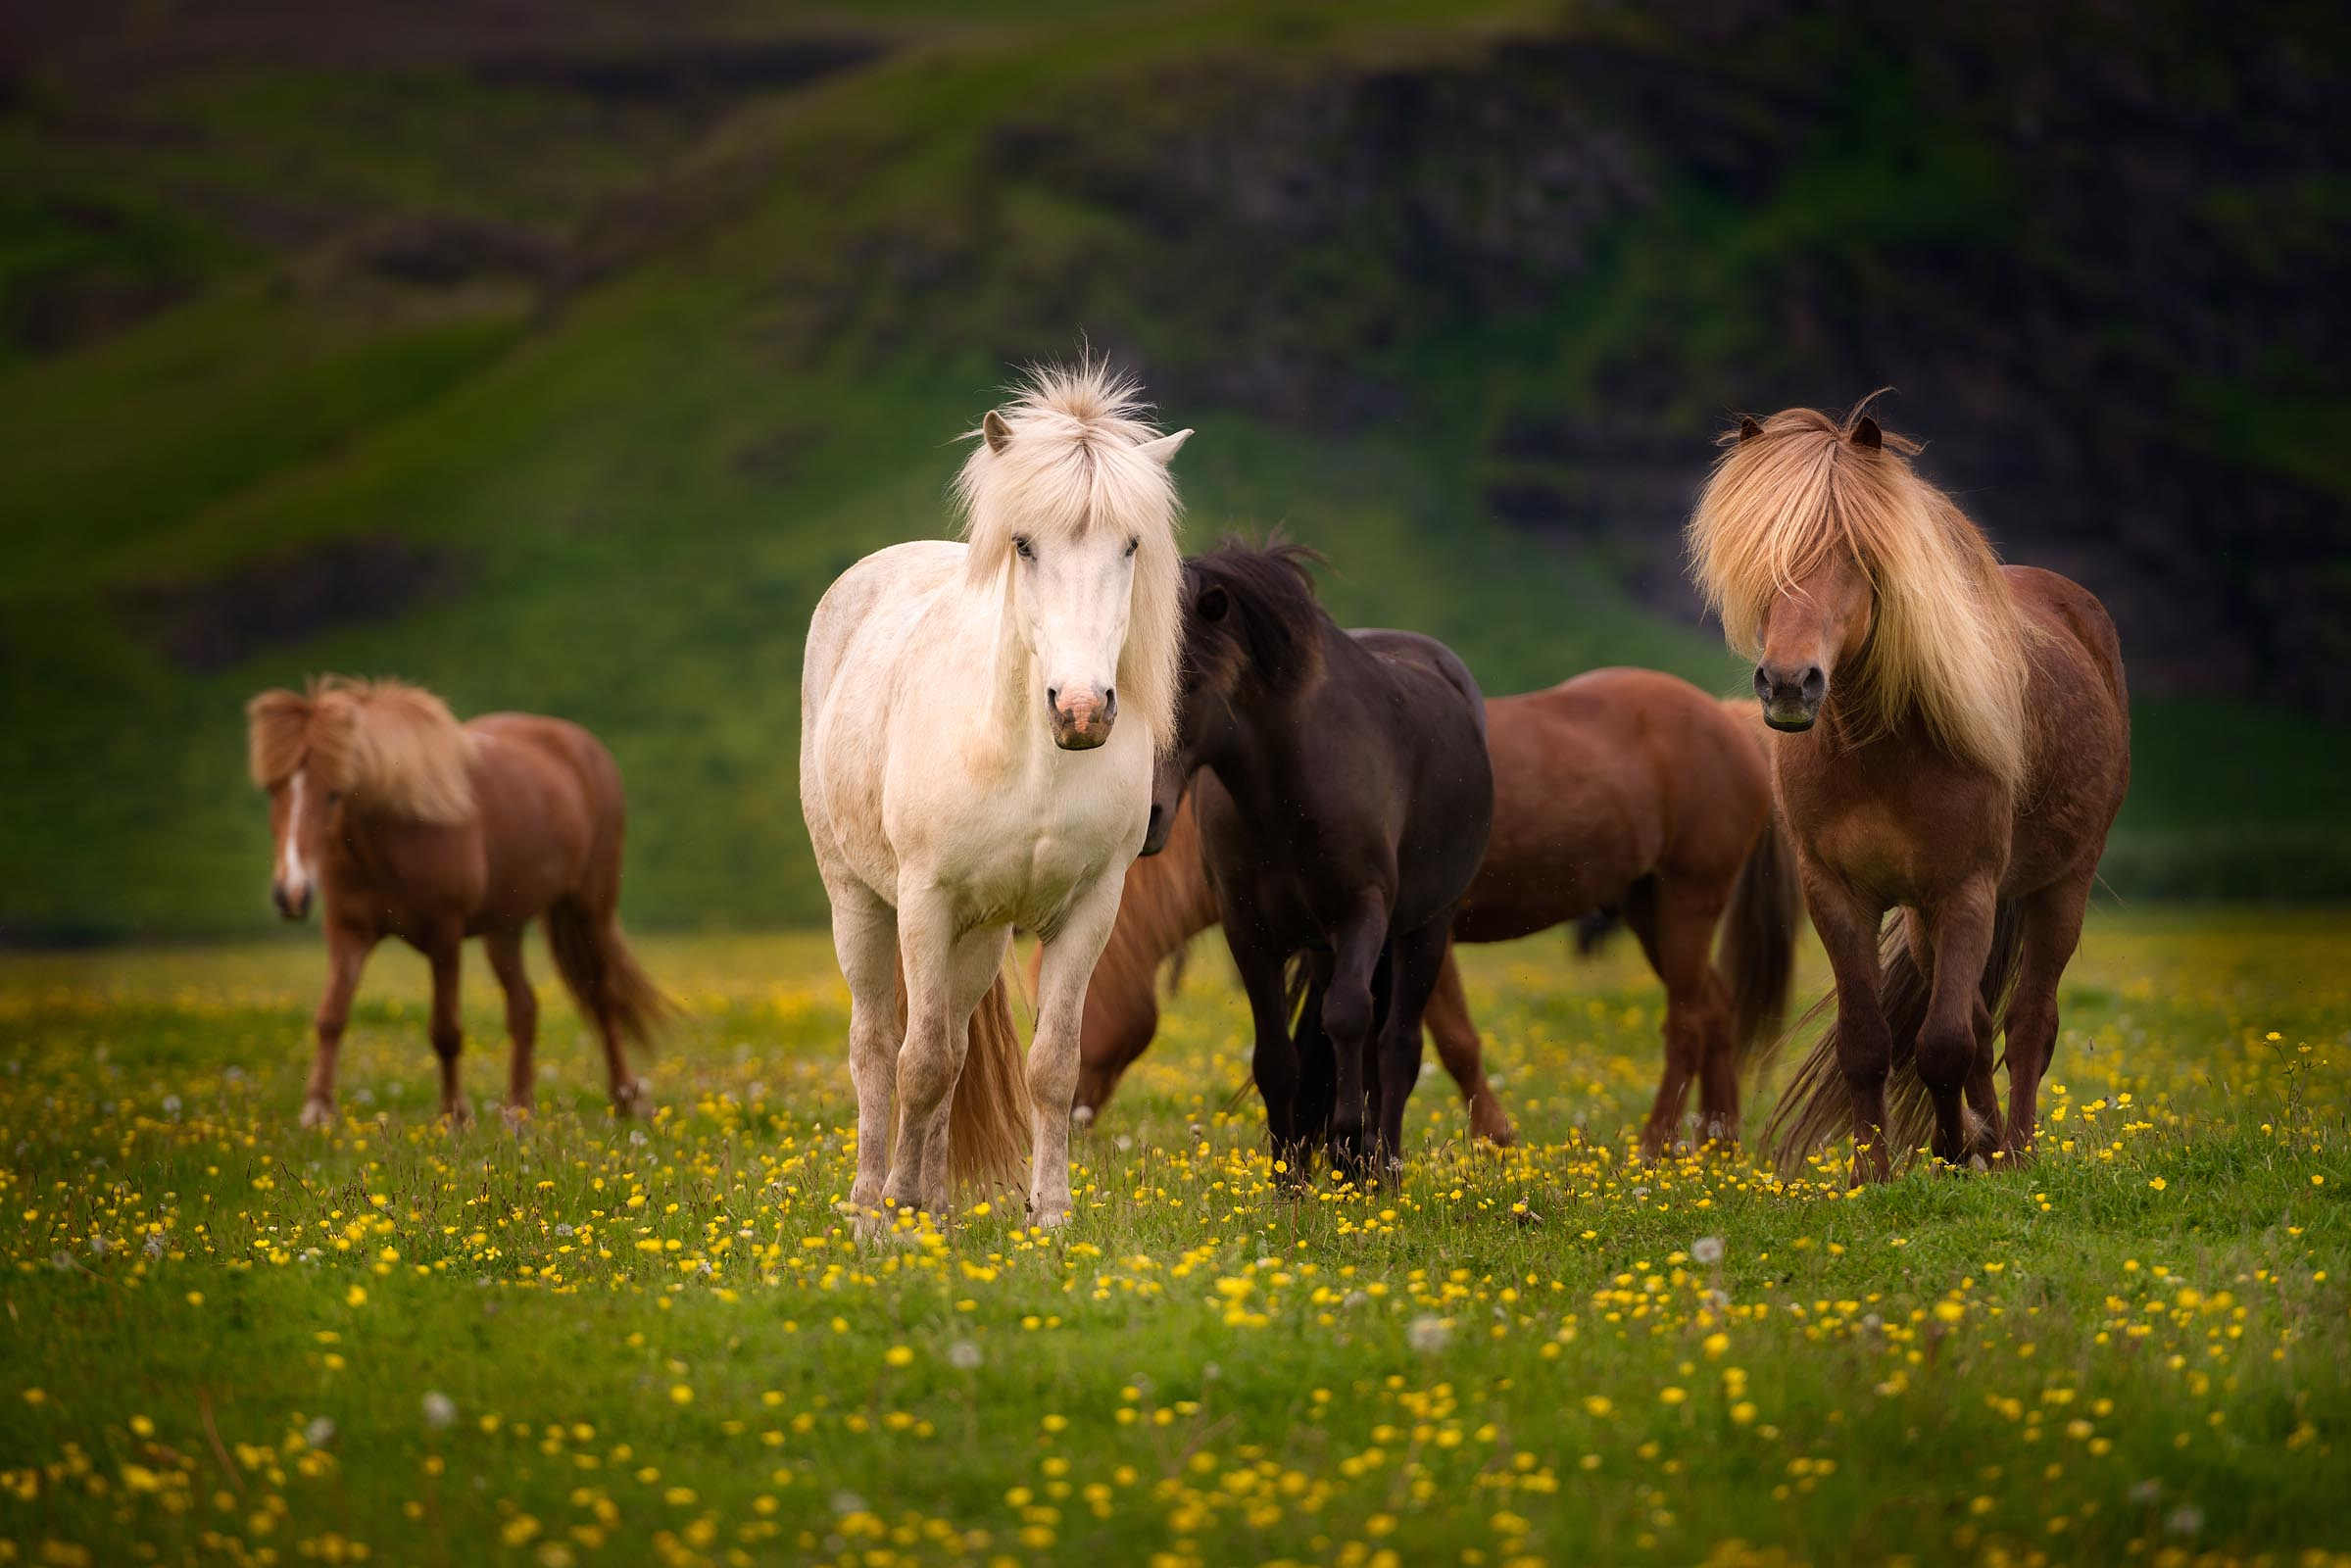 Photograph of Horses in Ring Road, Iceland by Brent Goldman Photography